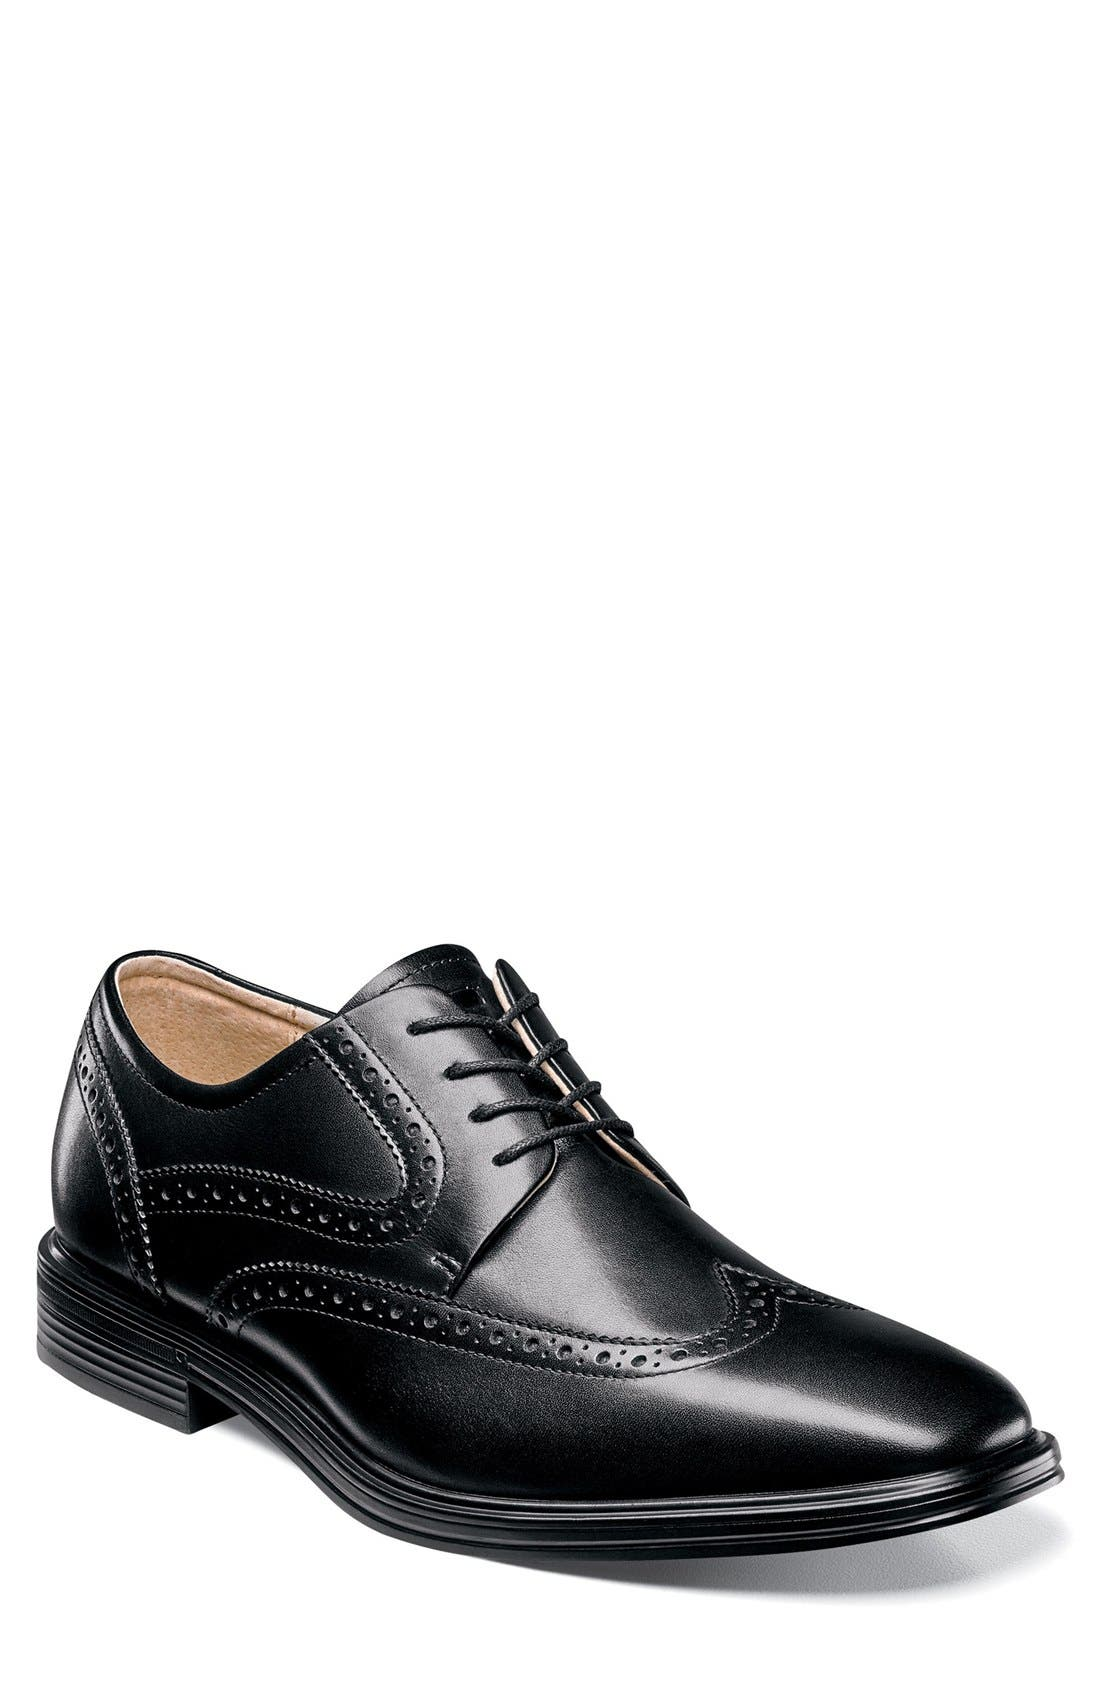 Heights Wingtip,                         Main,                         color, 001